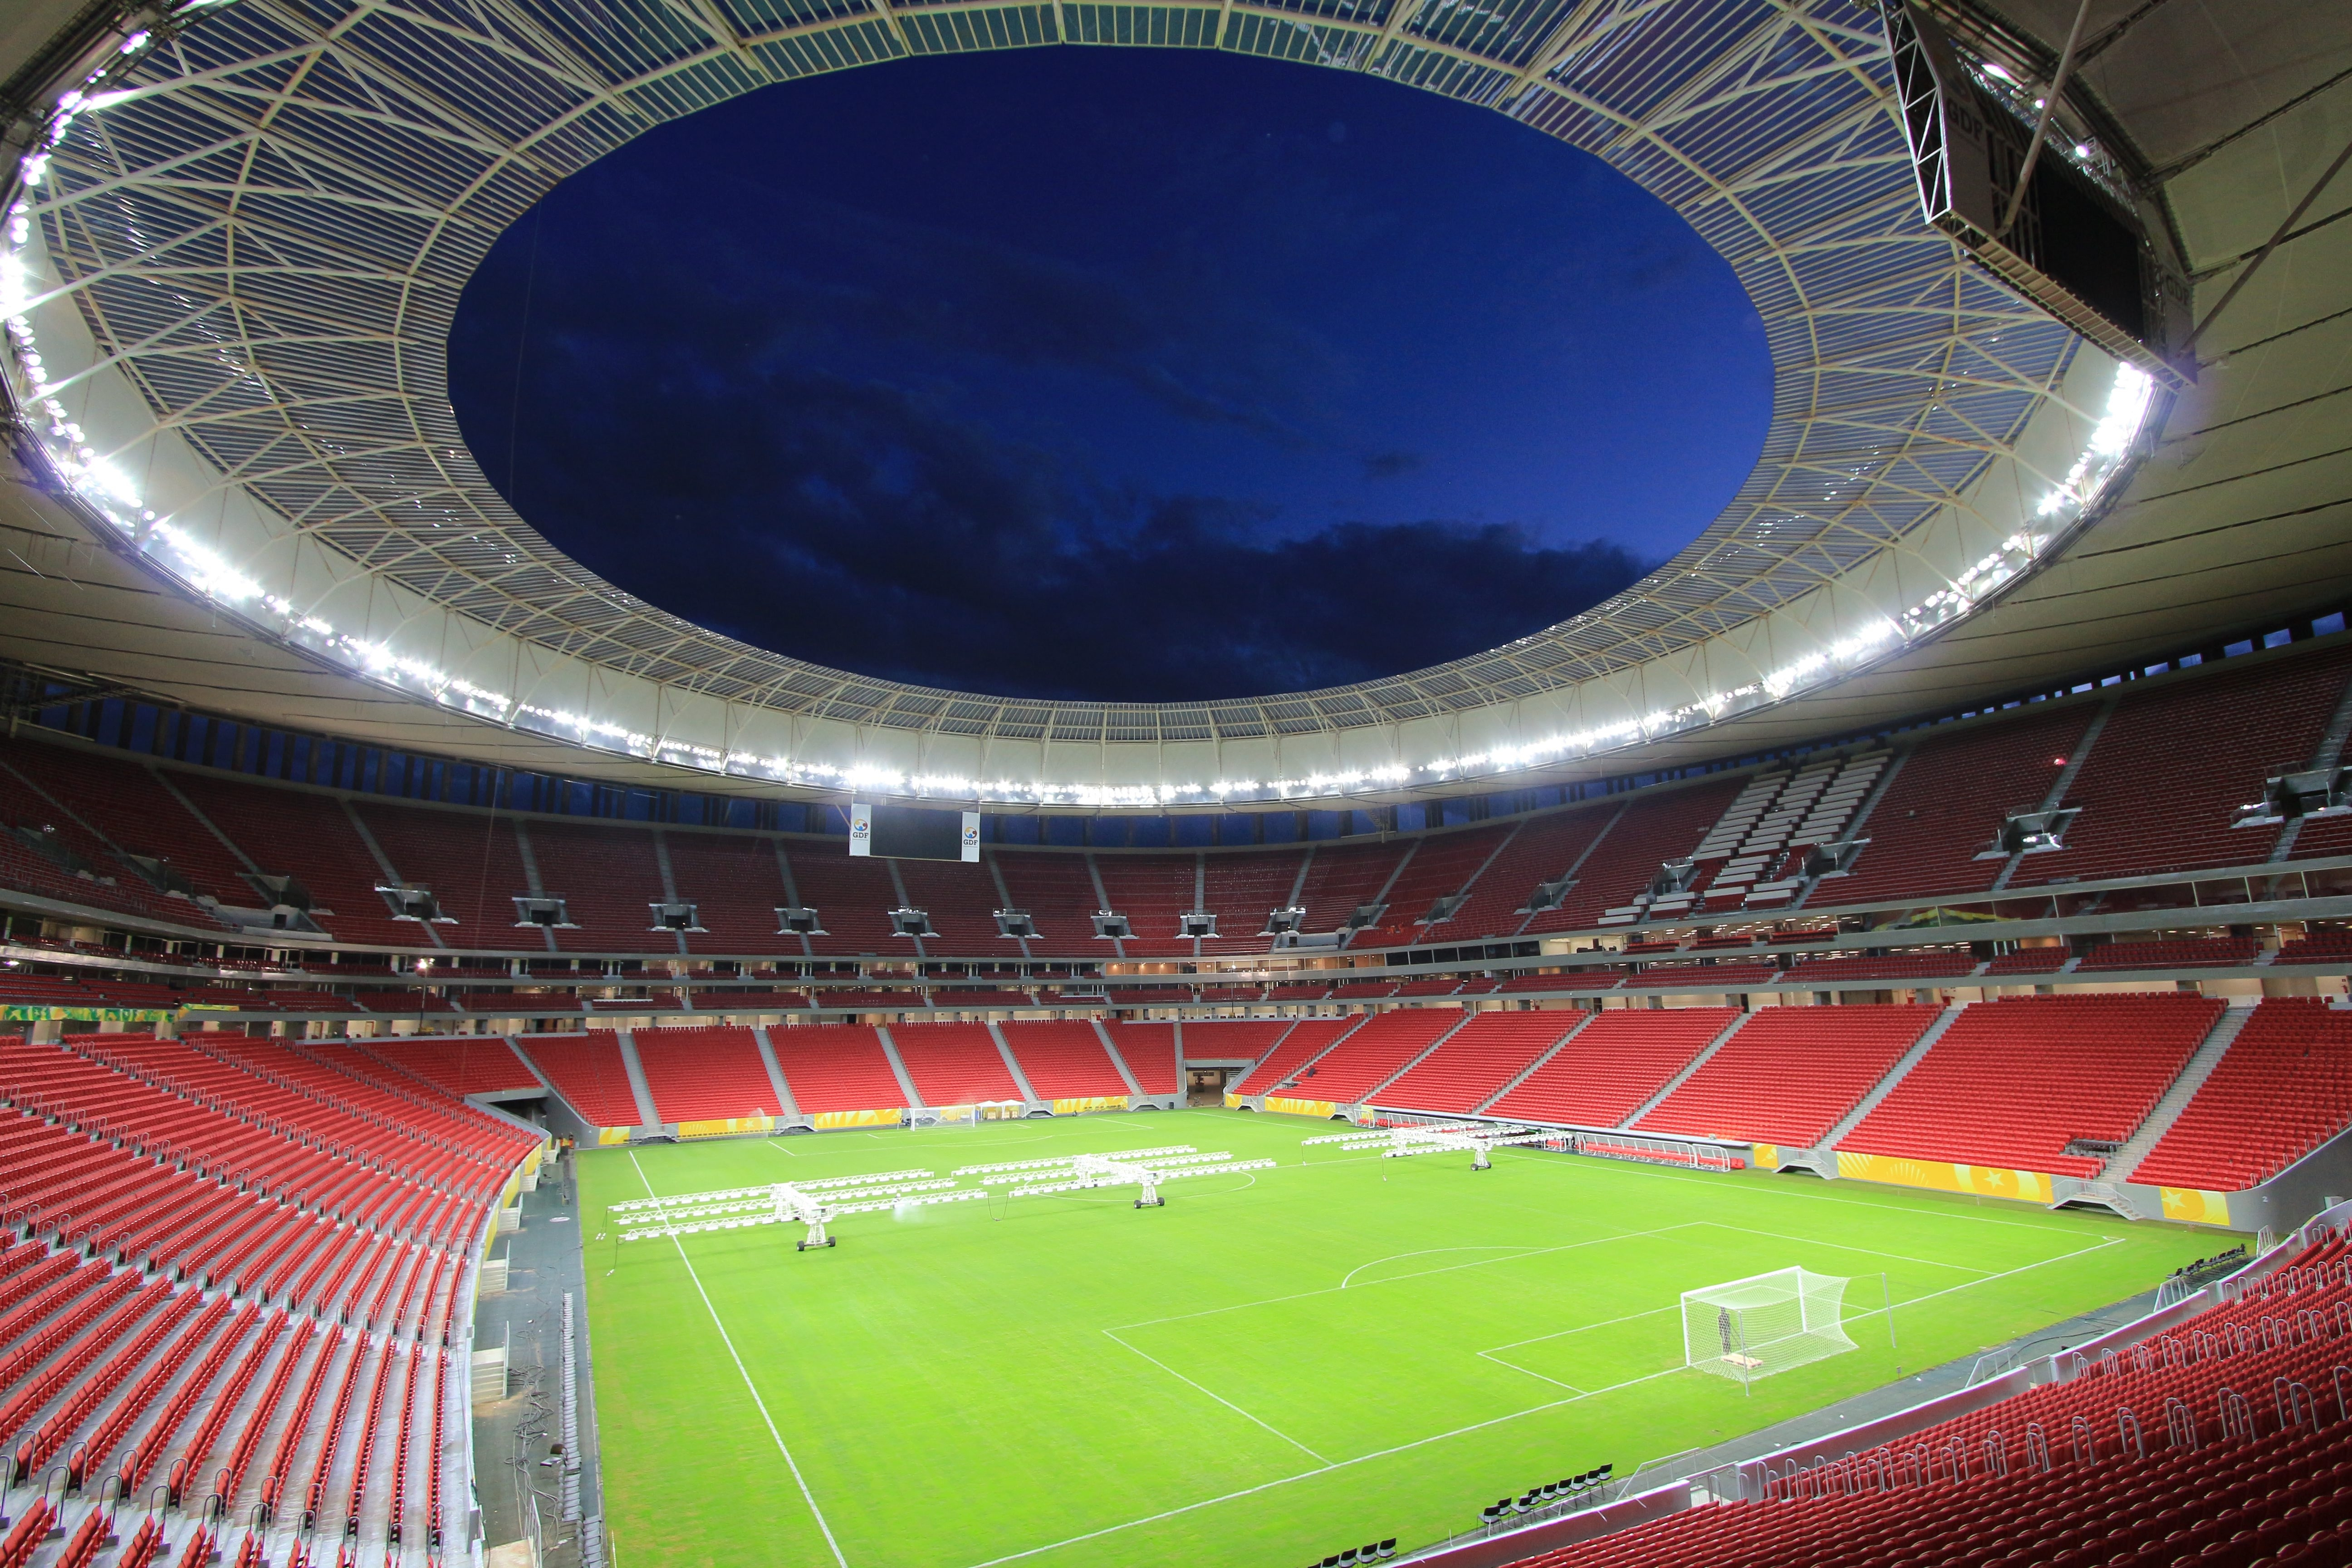 Amherst-based Birdair provided roofs for three stadiums in Brazil that will host a total of 19 matches during the World Cup.